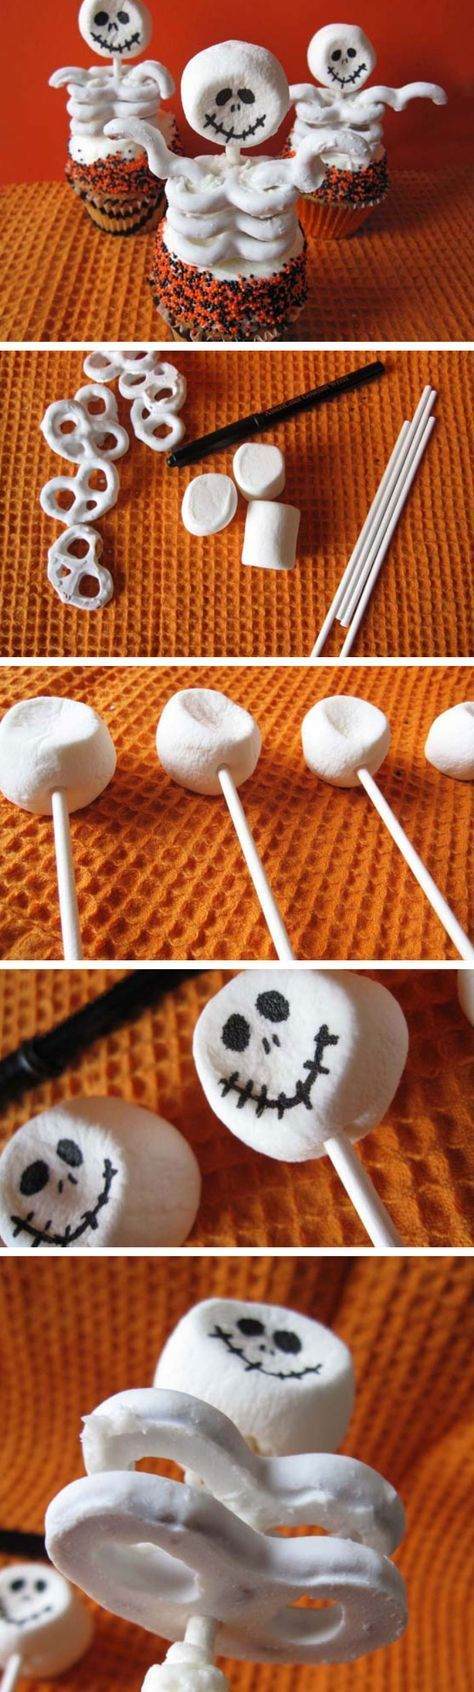 Skeleton Cupcakes   Click Pic for 22 DIY Halloween Party Ideas for Kids   Easy Halloween Party Food Ideas for Kids to Make